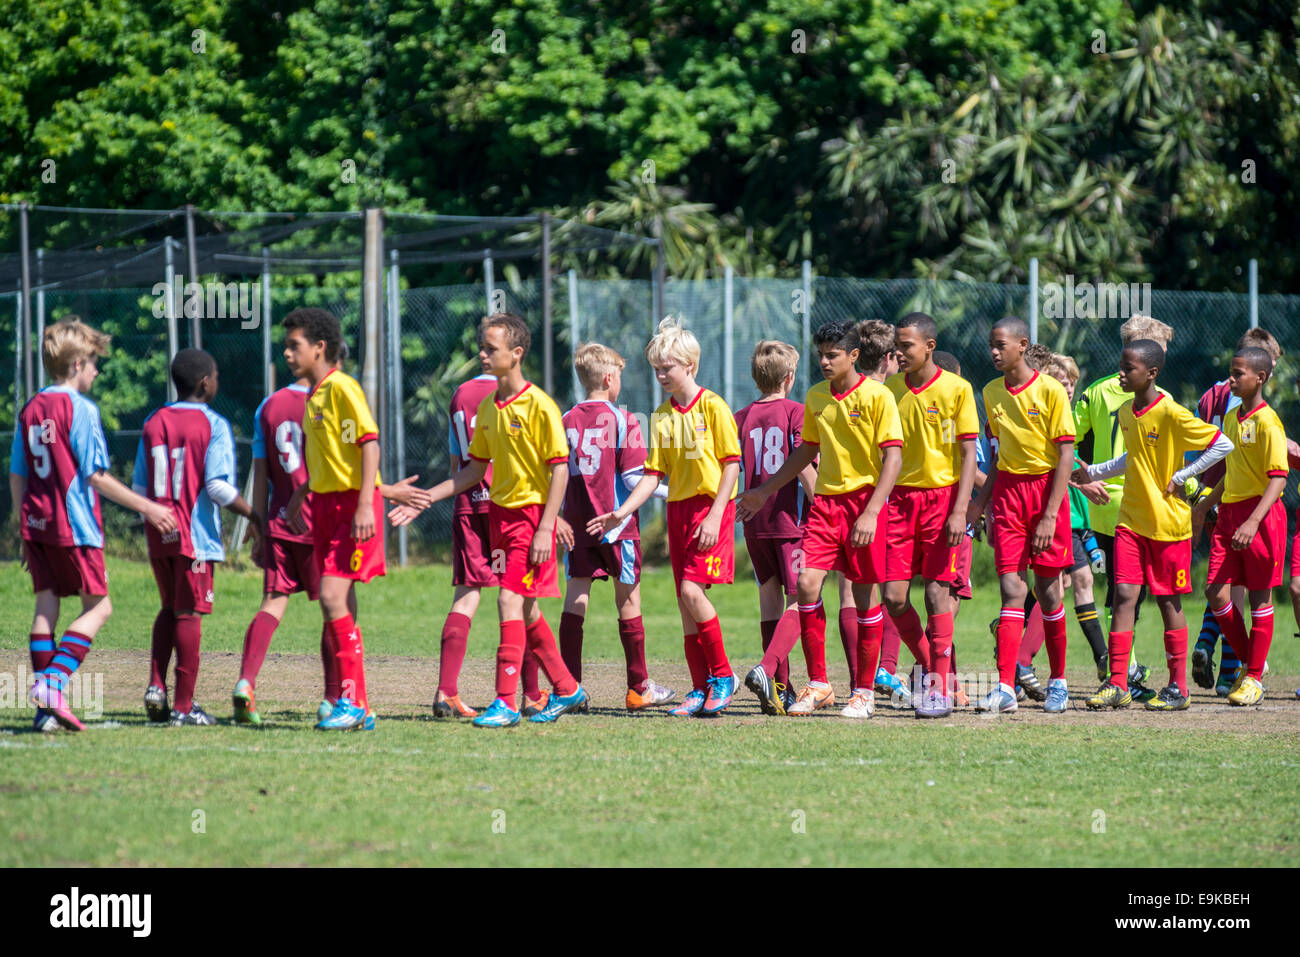 Youth football players (U13) greet each other after the match , Cape Town, South Africa - Stock Image